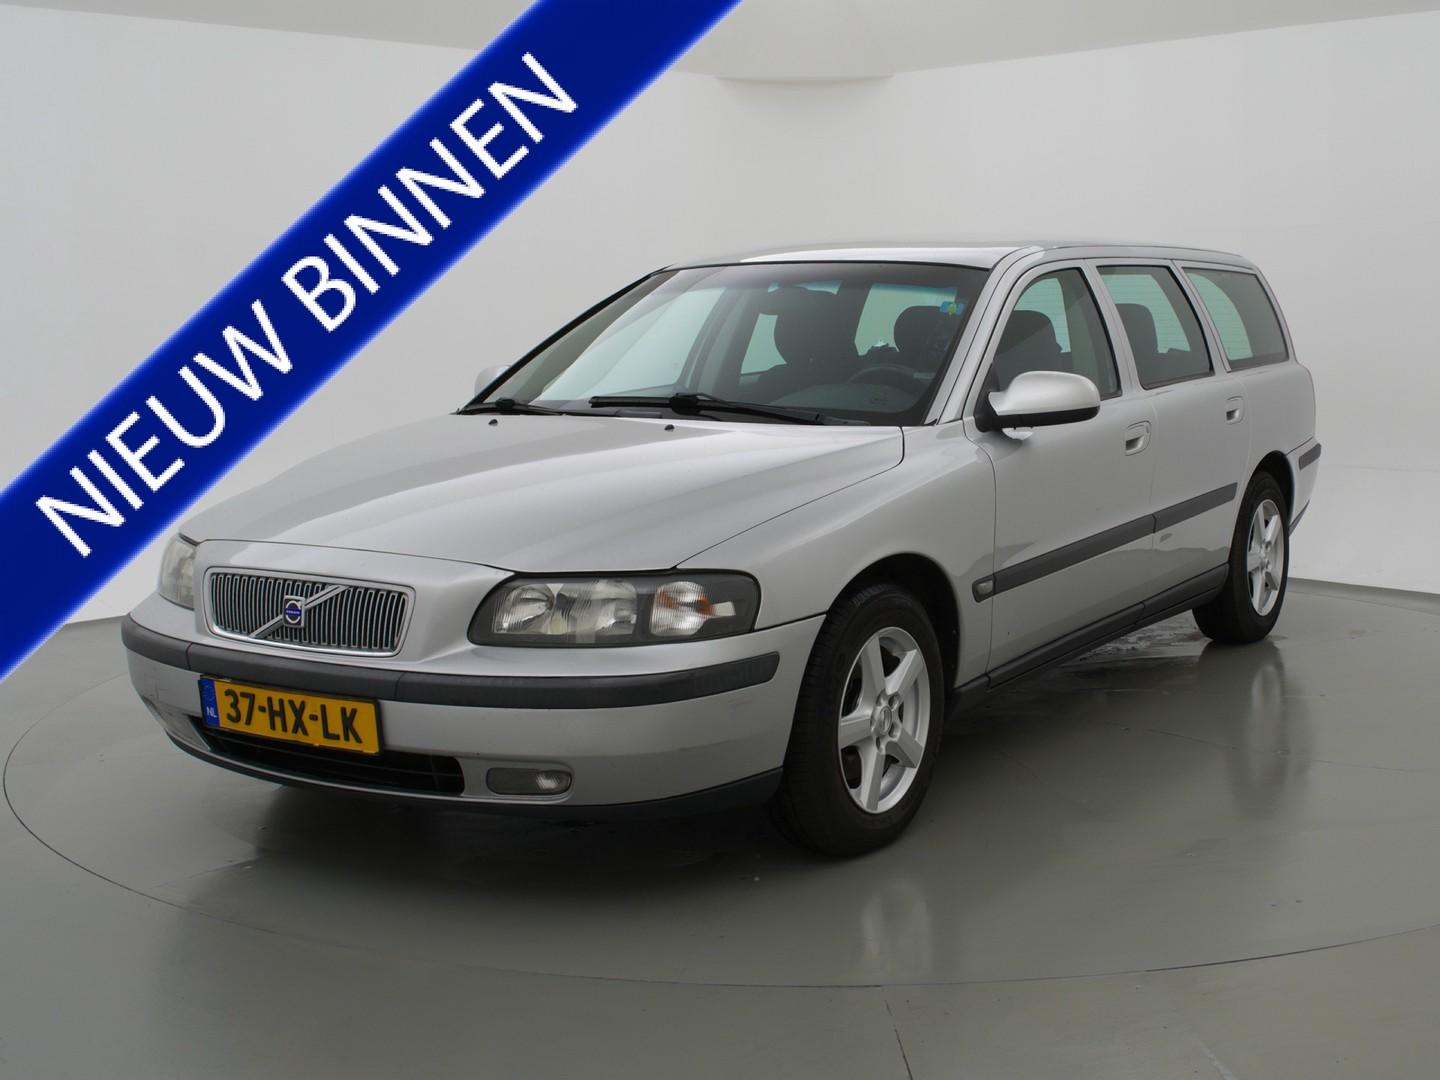 Volvo V70 2.4 d5 163 pk + climate / cruise control